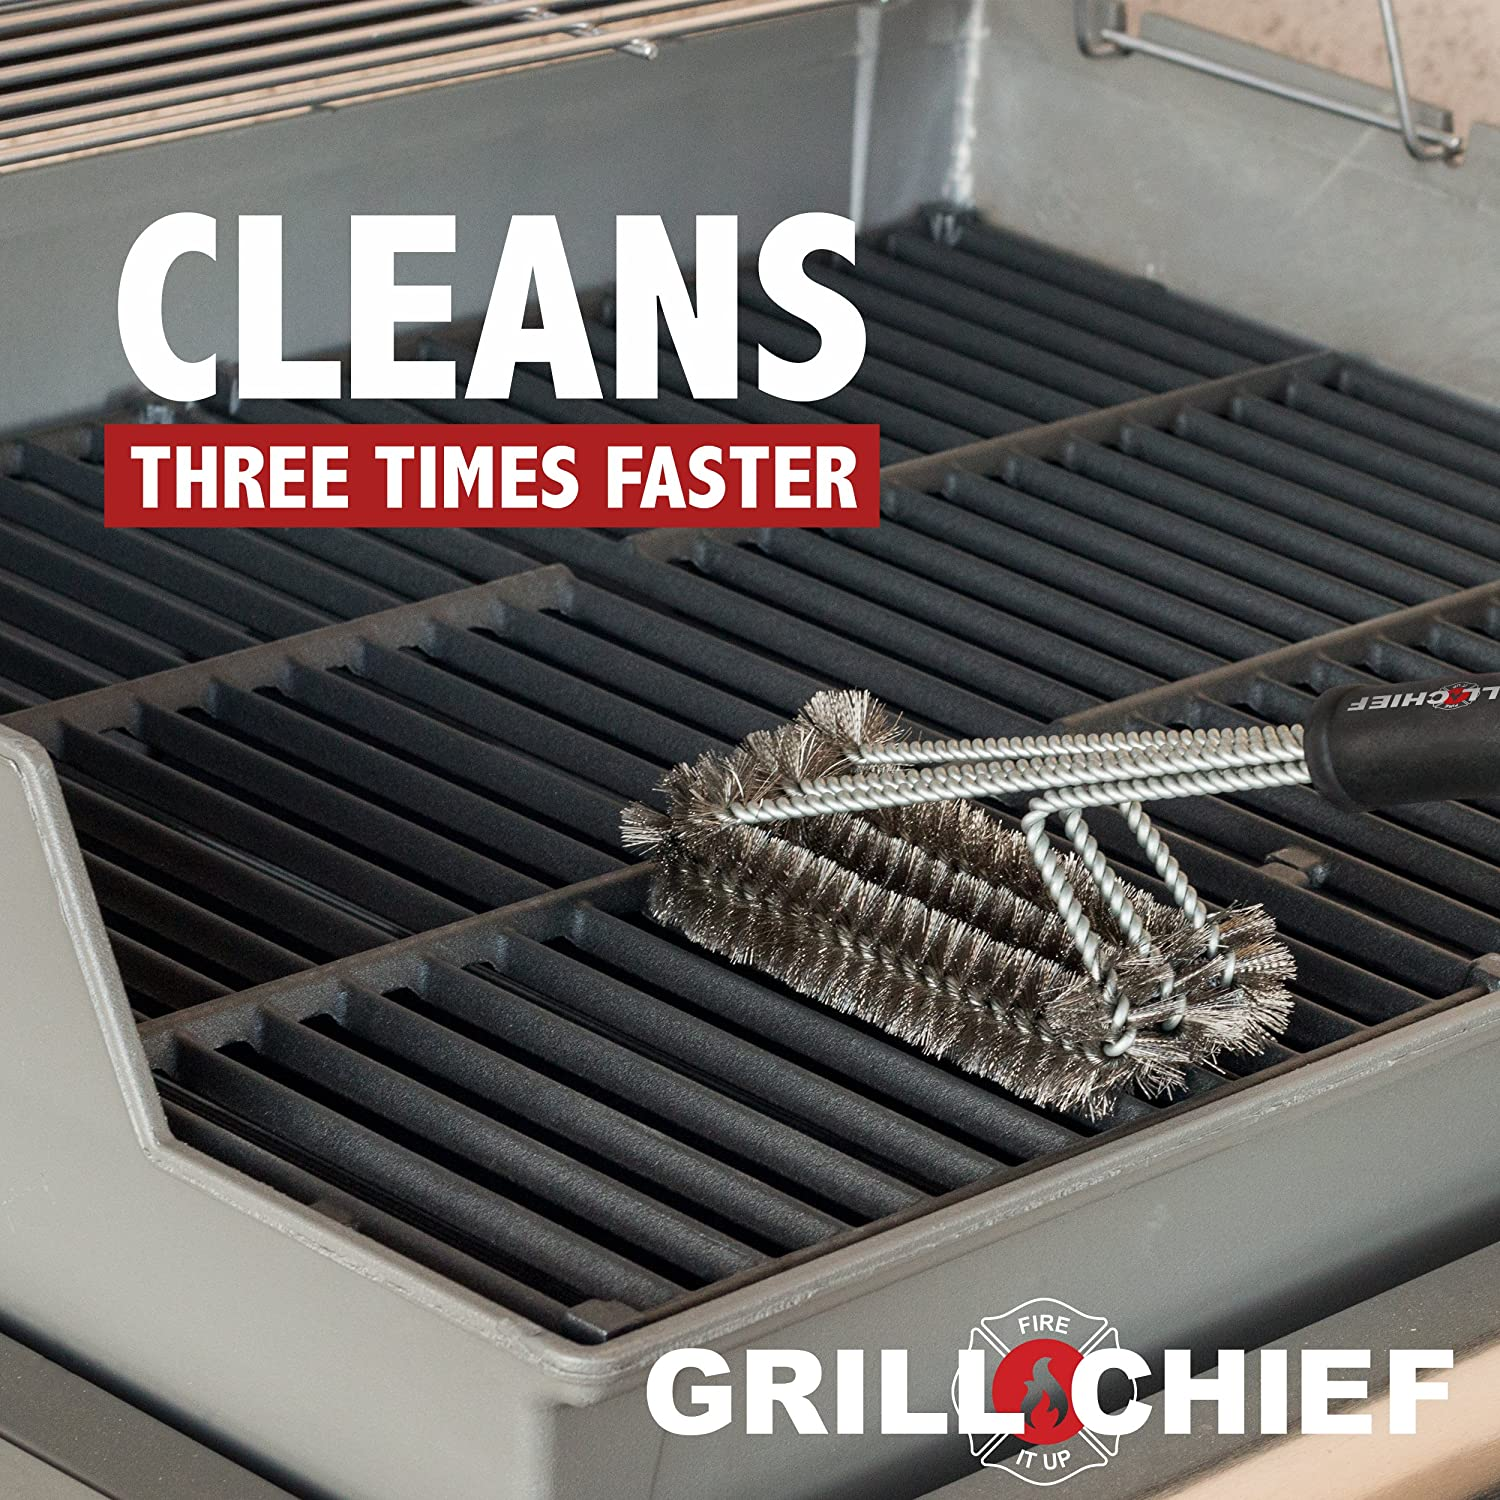 Grill brush for stainless steel grates